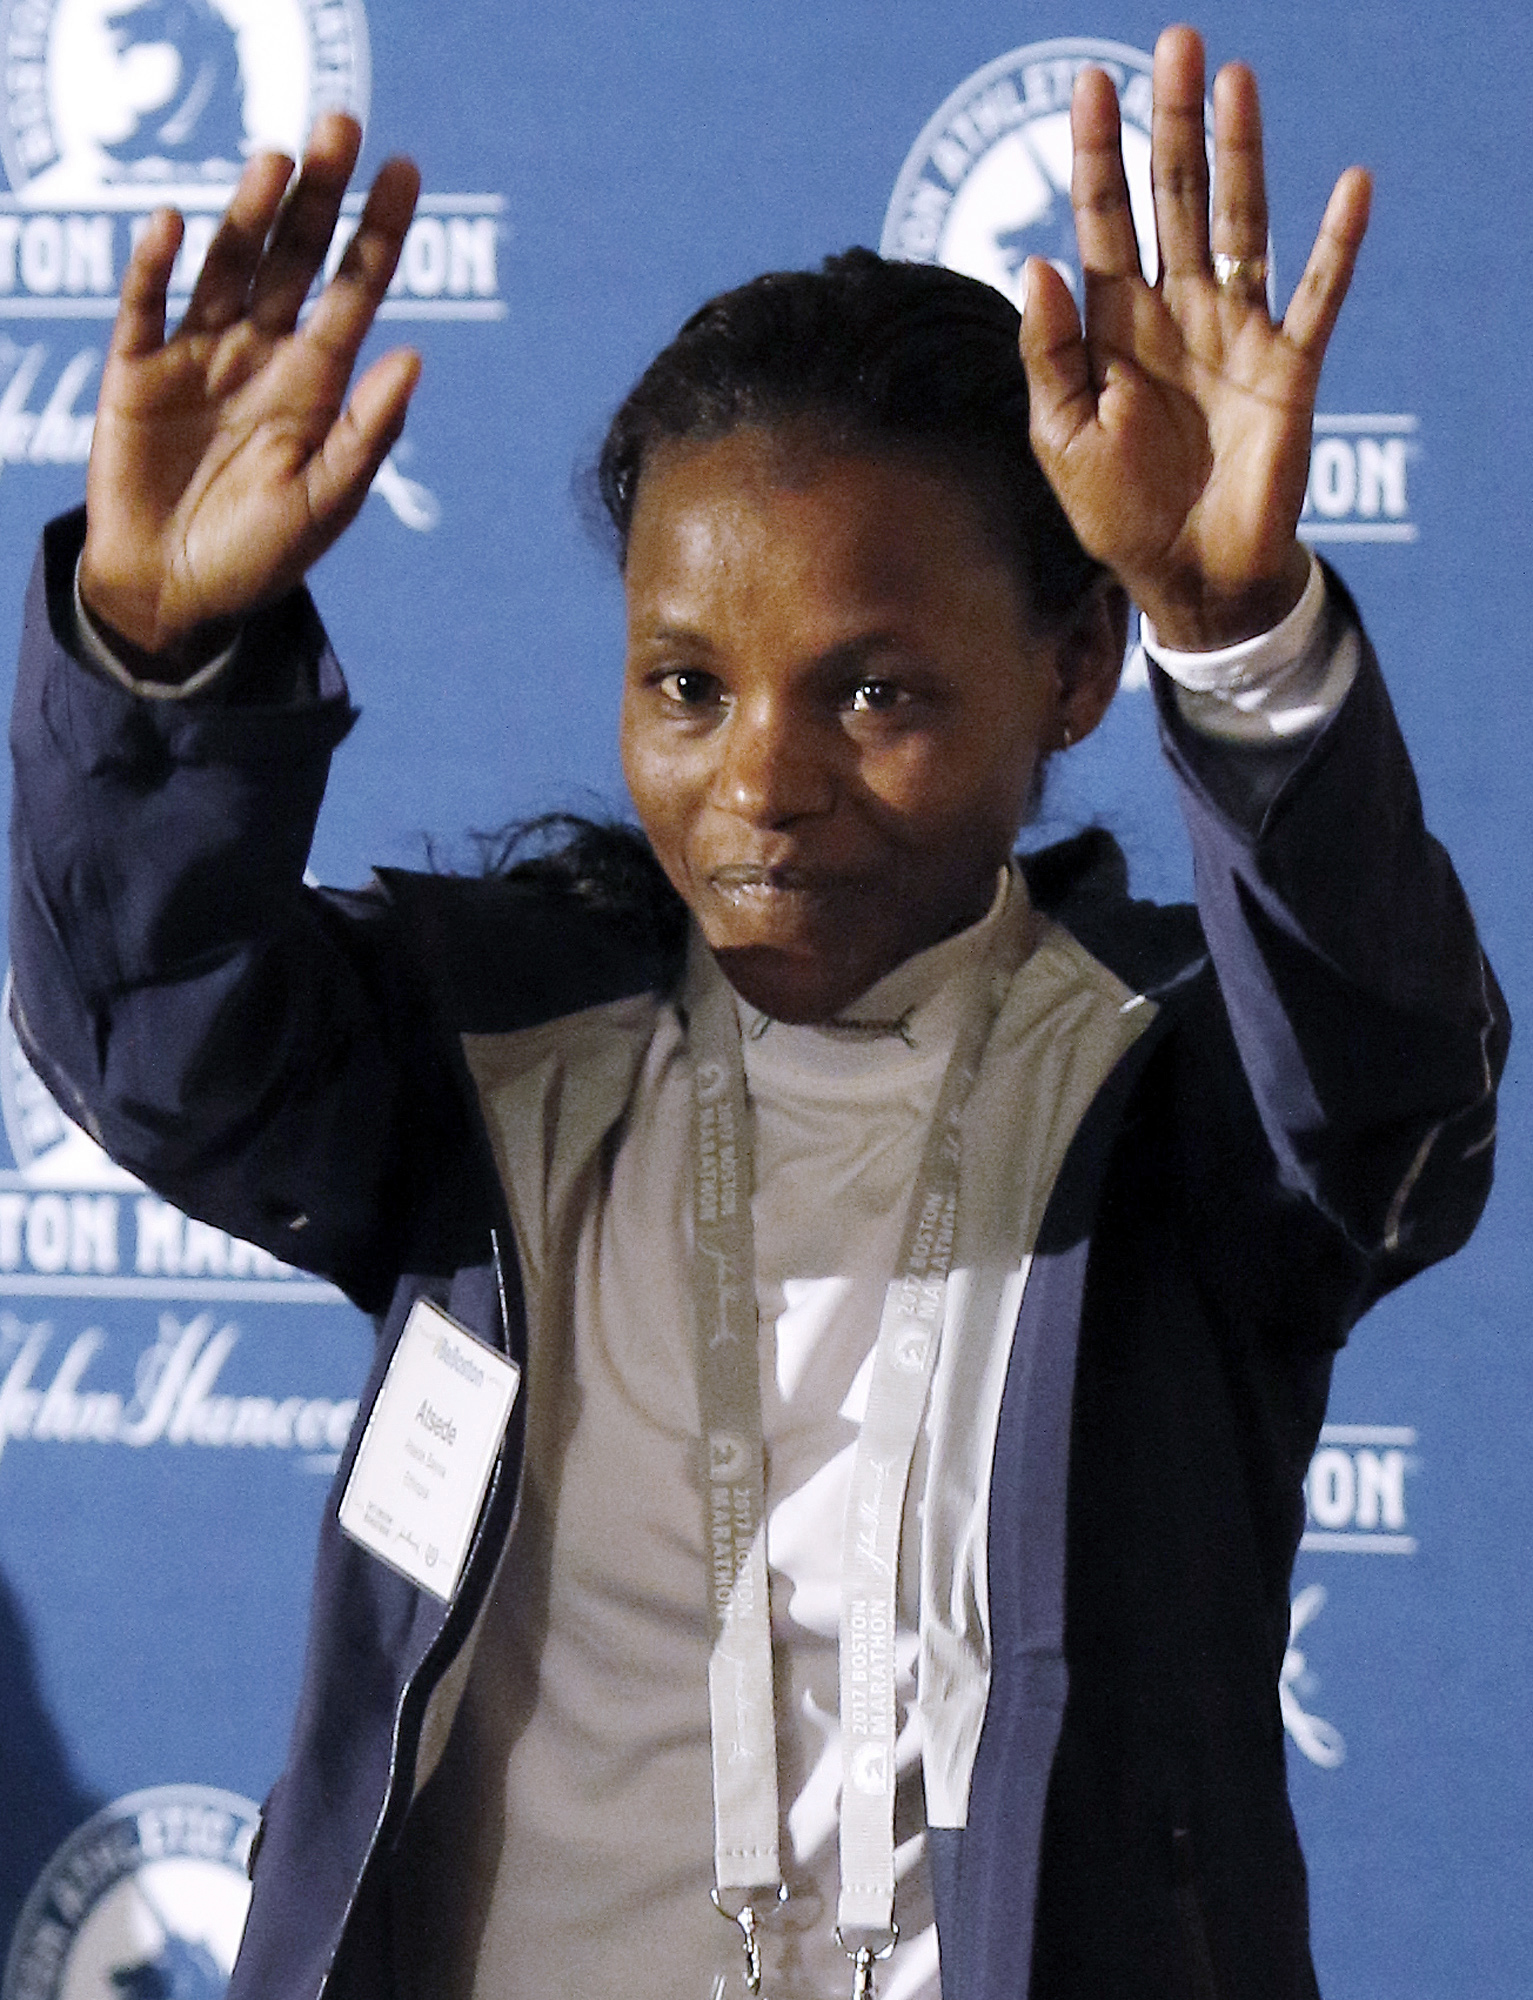 Top-seeded distance runner Atsede Baysa, of Ethiopia, participates in a Boston Marathon media availability Friday, April 14, 2017, in advance of Monday's race in Boston. (AP Photo/Bill Sikes)